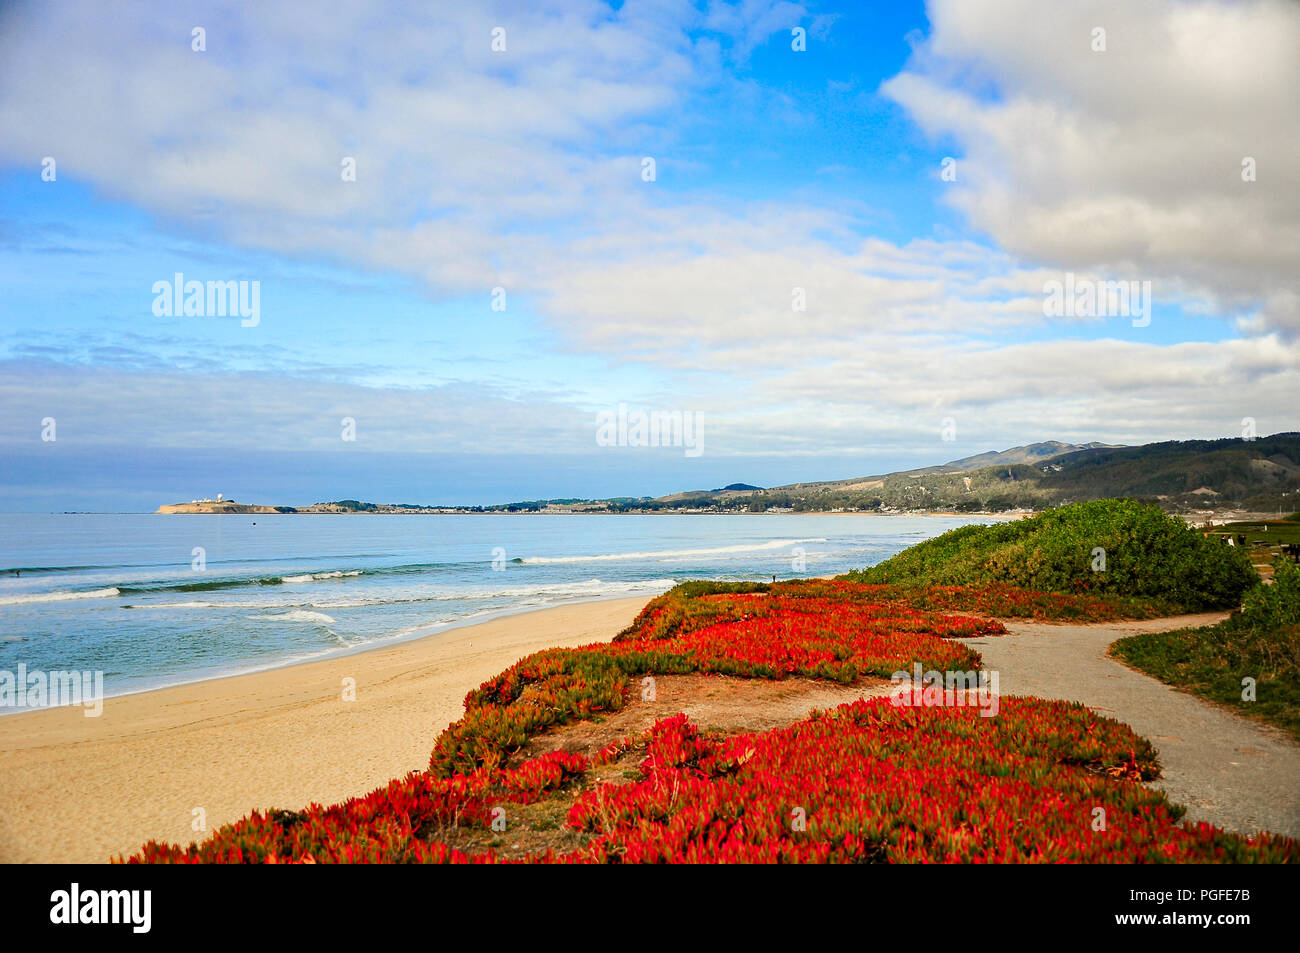 Beautful Pacific ocean seascape at Pebble beach near Monterey, California. Foggy background with crashing waves, sandy shore, rocks and blue cloud sky - Stock Image